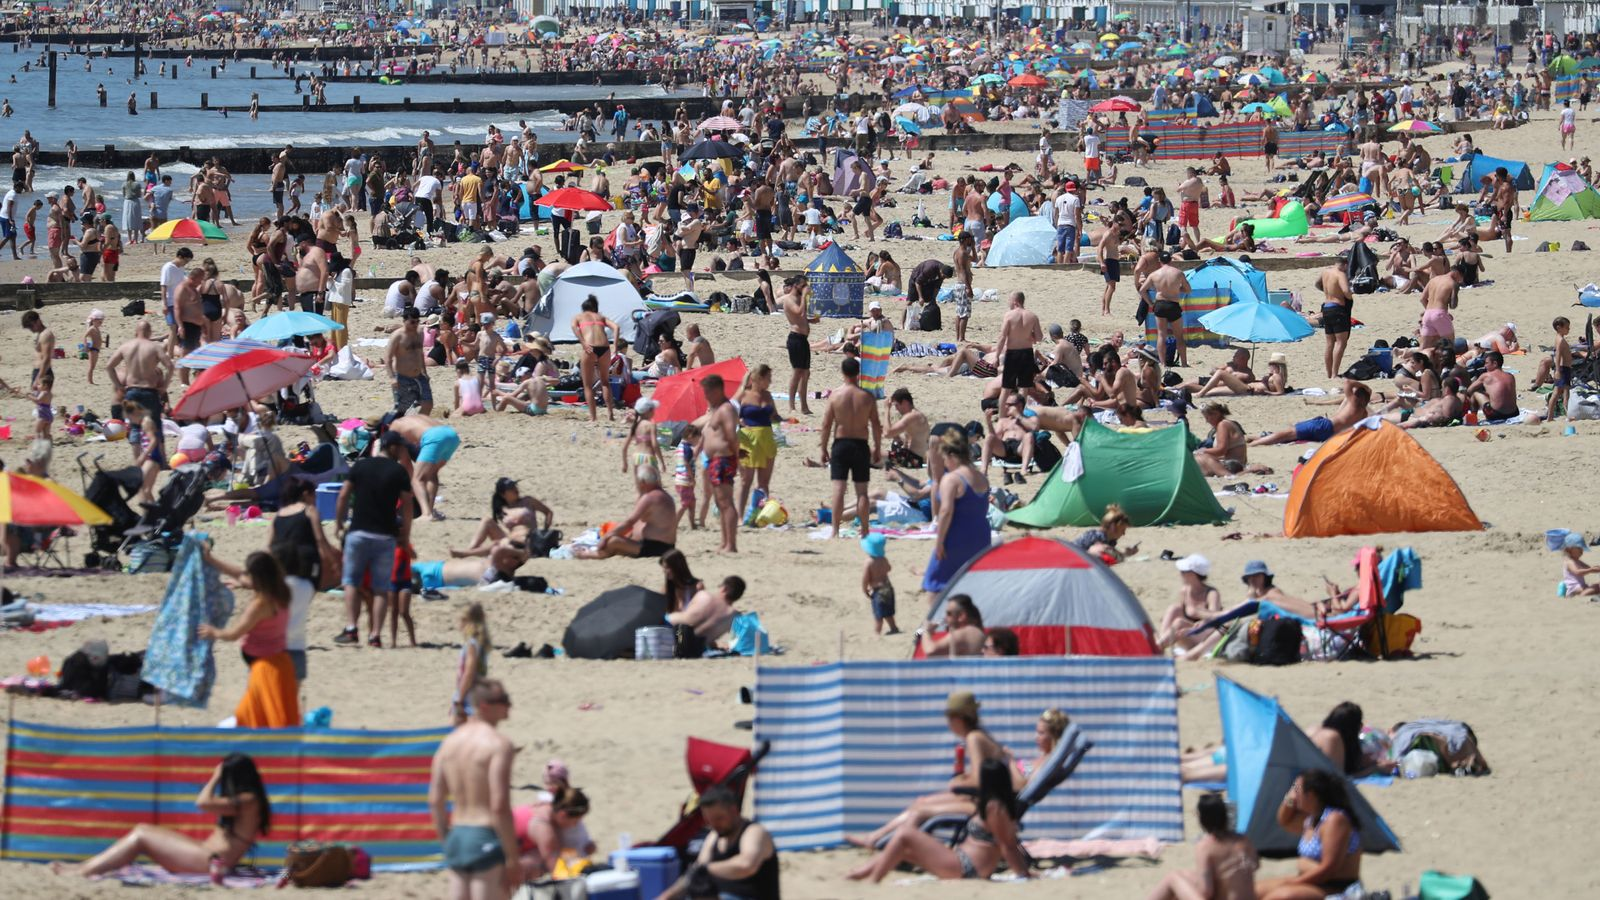 Coronavirus: Britons urged to 'use common sense' as beaches and parks packed on hot Bank Holiday Monday